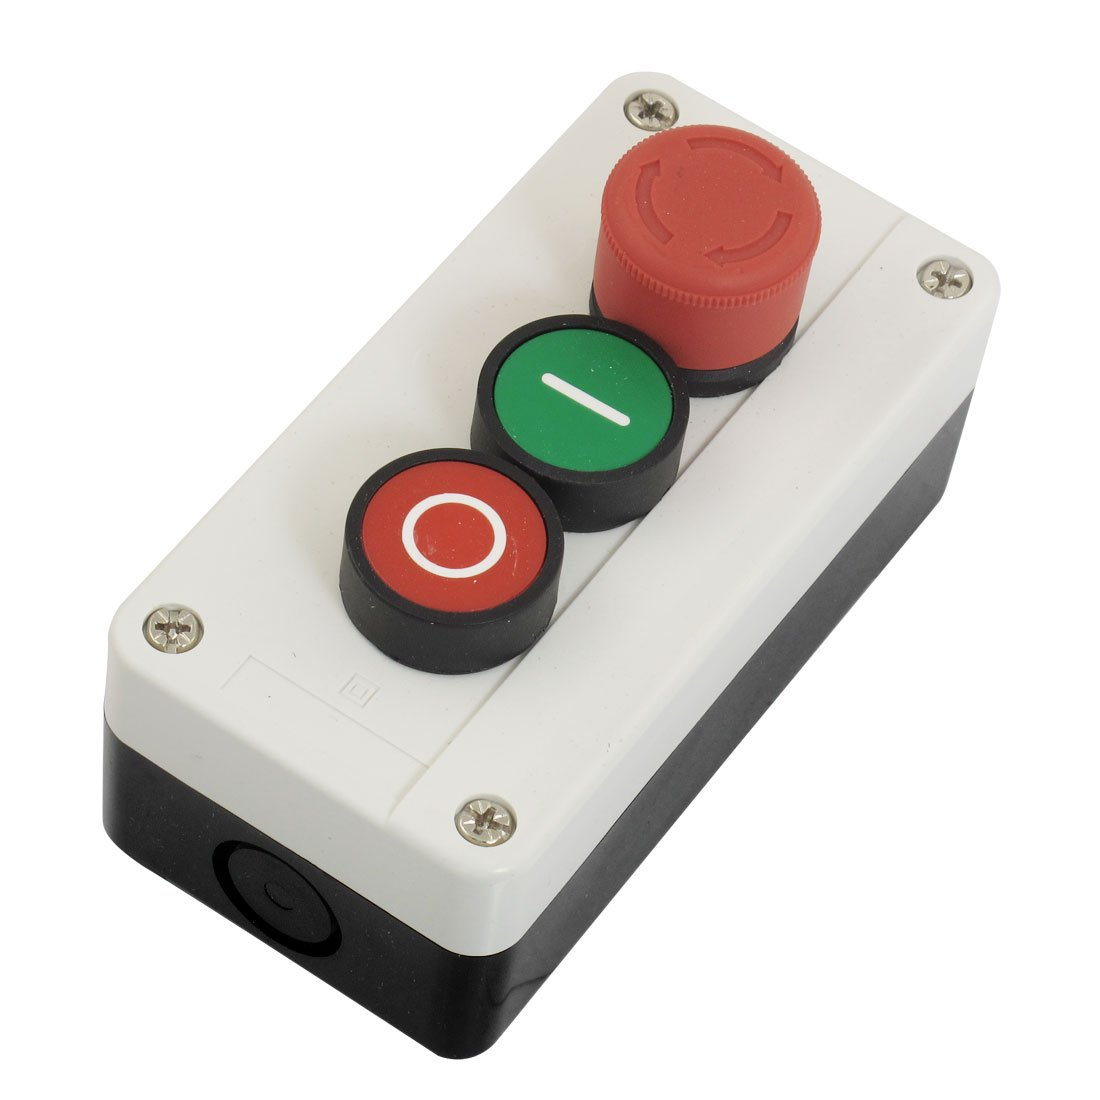 все цены на NC Emergency Stop NO Red Green Push Button Switch Station 600V 10A онлайн